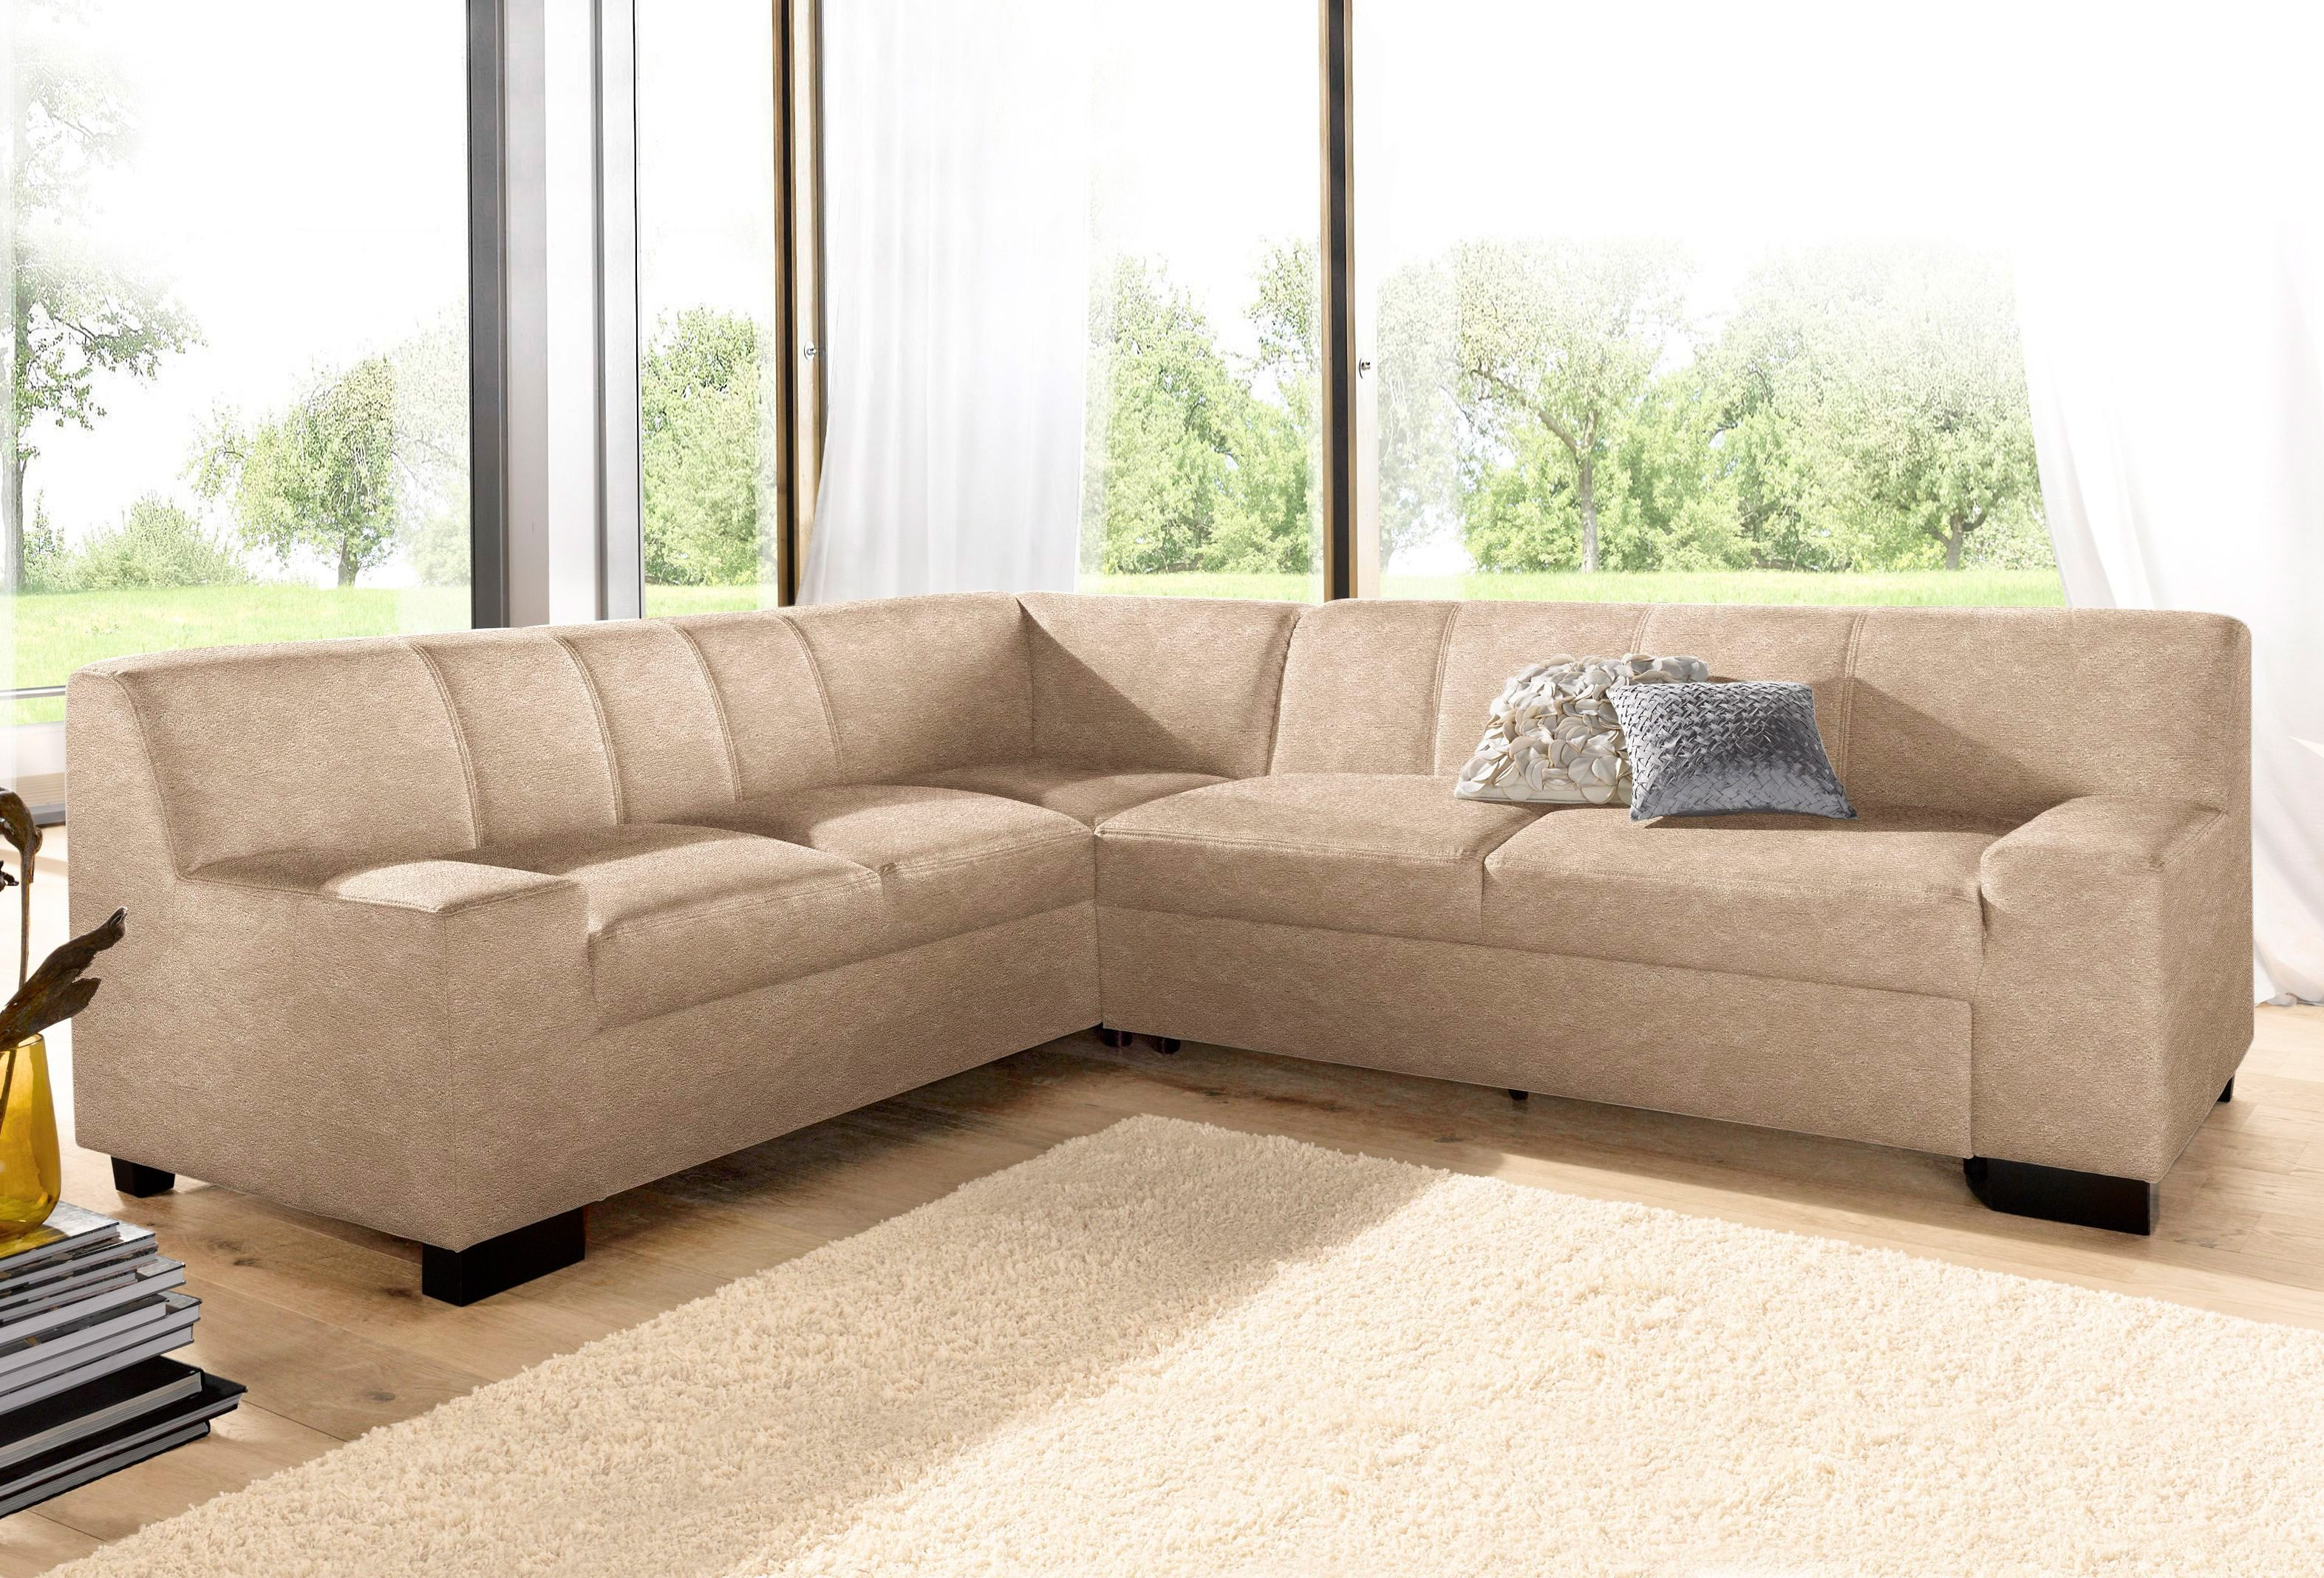 Ecksofa Online Kaufen Domo Collection Ecksofa, Wahlweise Mit Bettfunktion Online